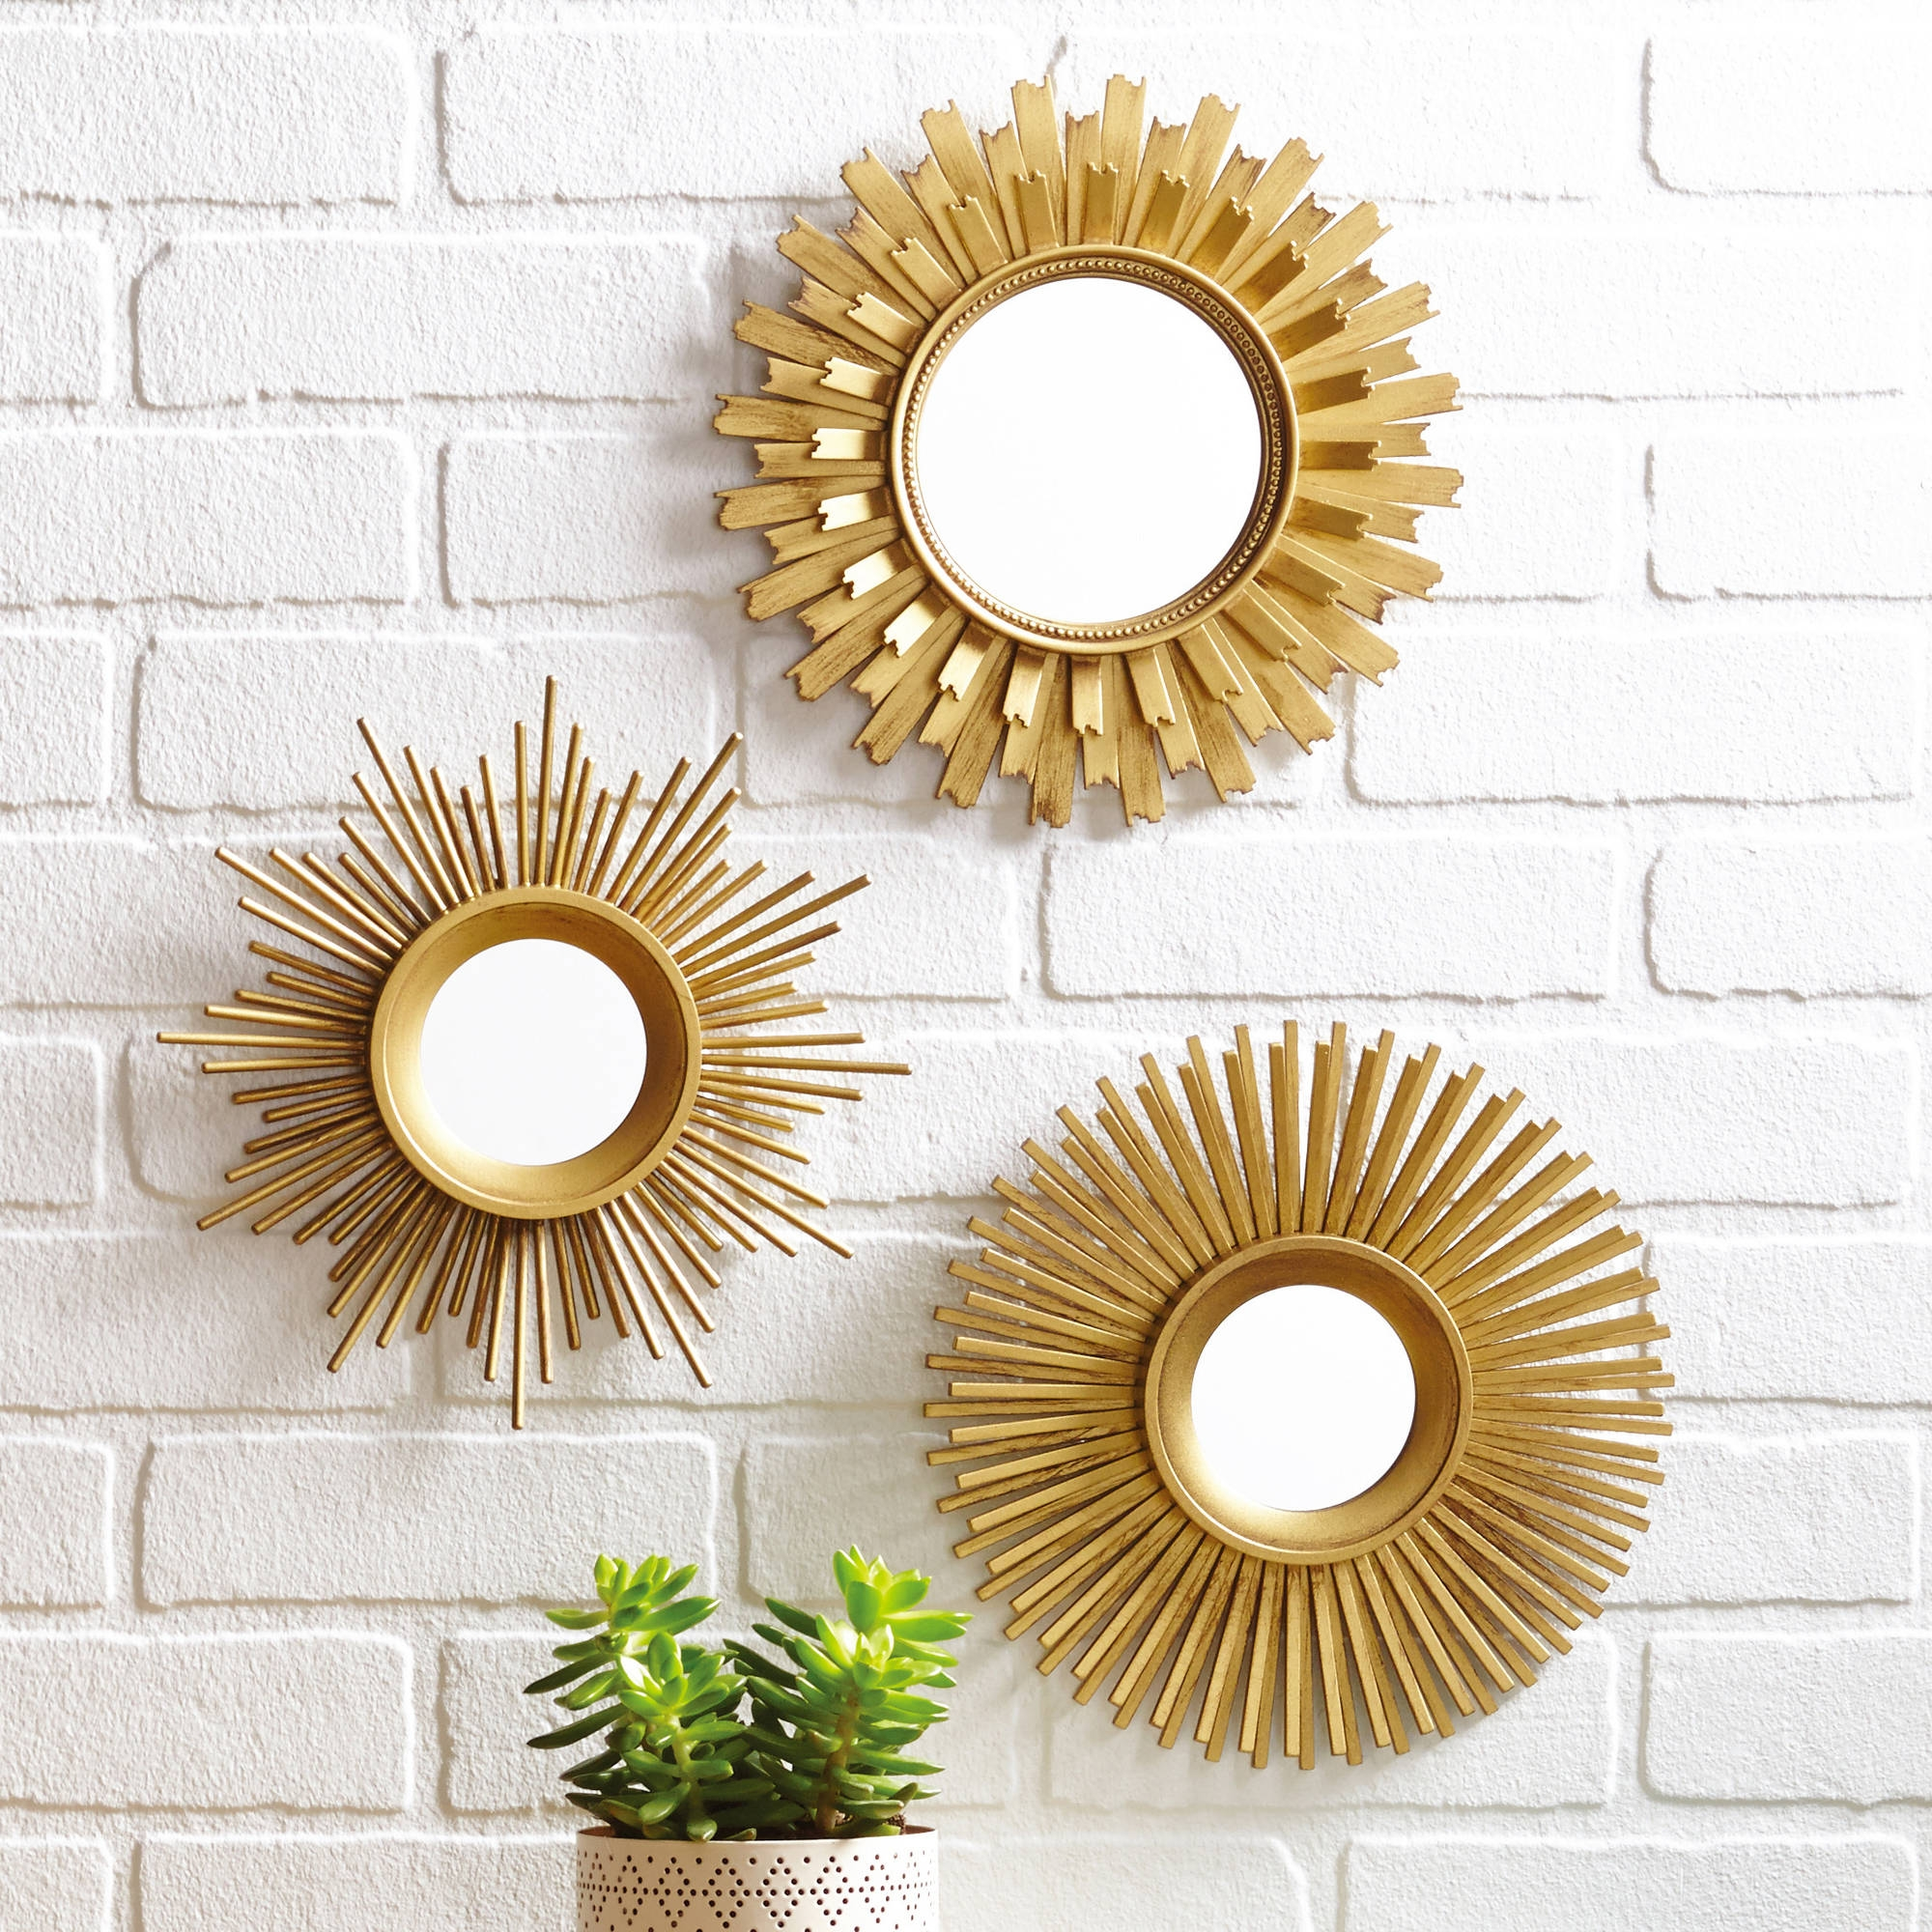 Sunburst Wall Mirror Set